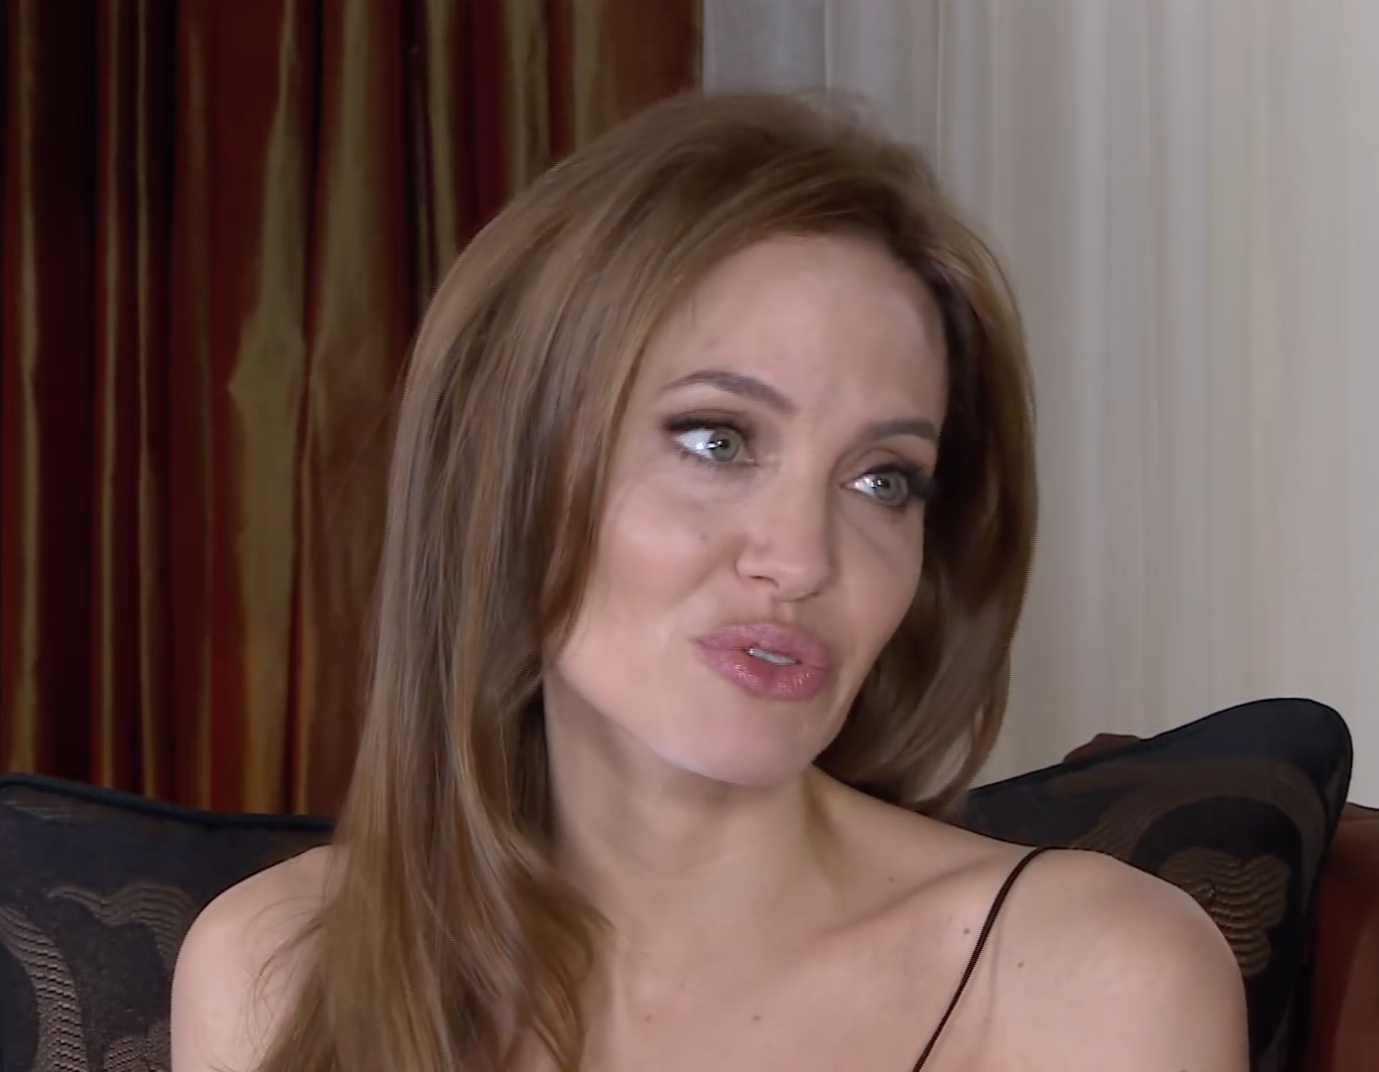 Screenshot 2021 03 25 at 15.23.22 e1616685865228 20 Fascinating Facts About Angelina Jolie